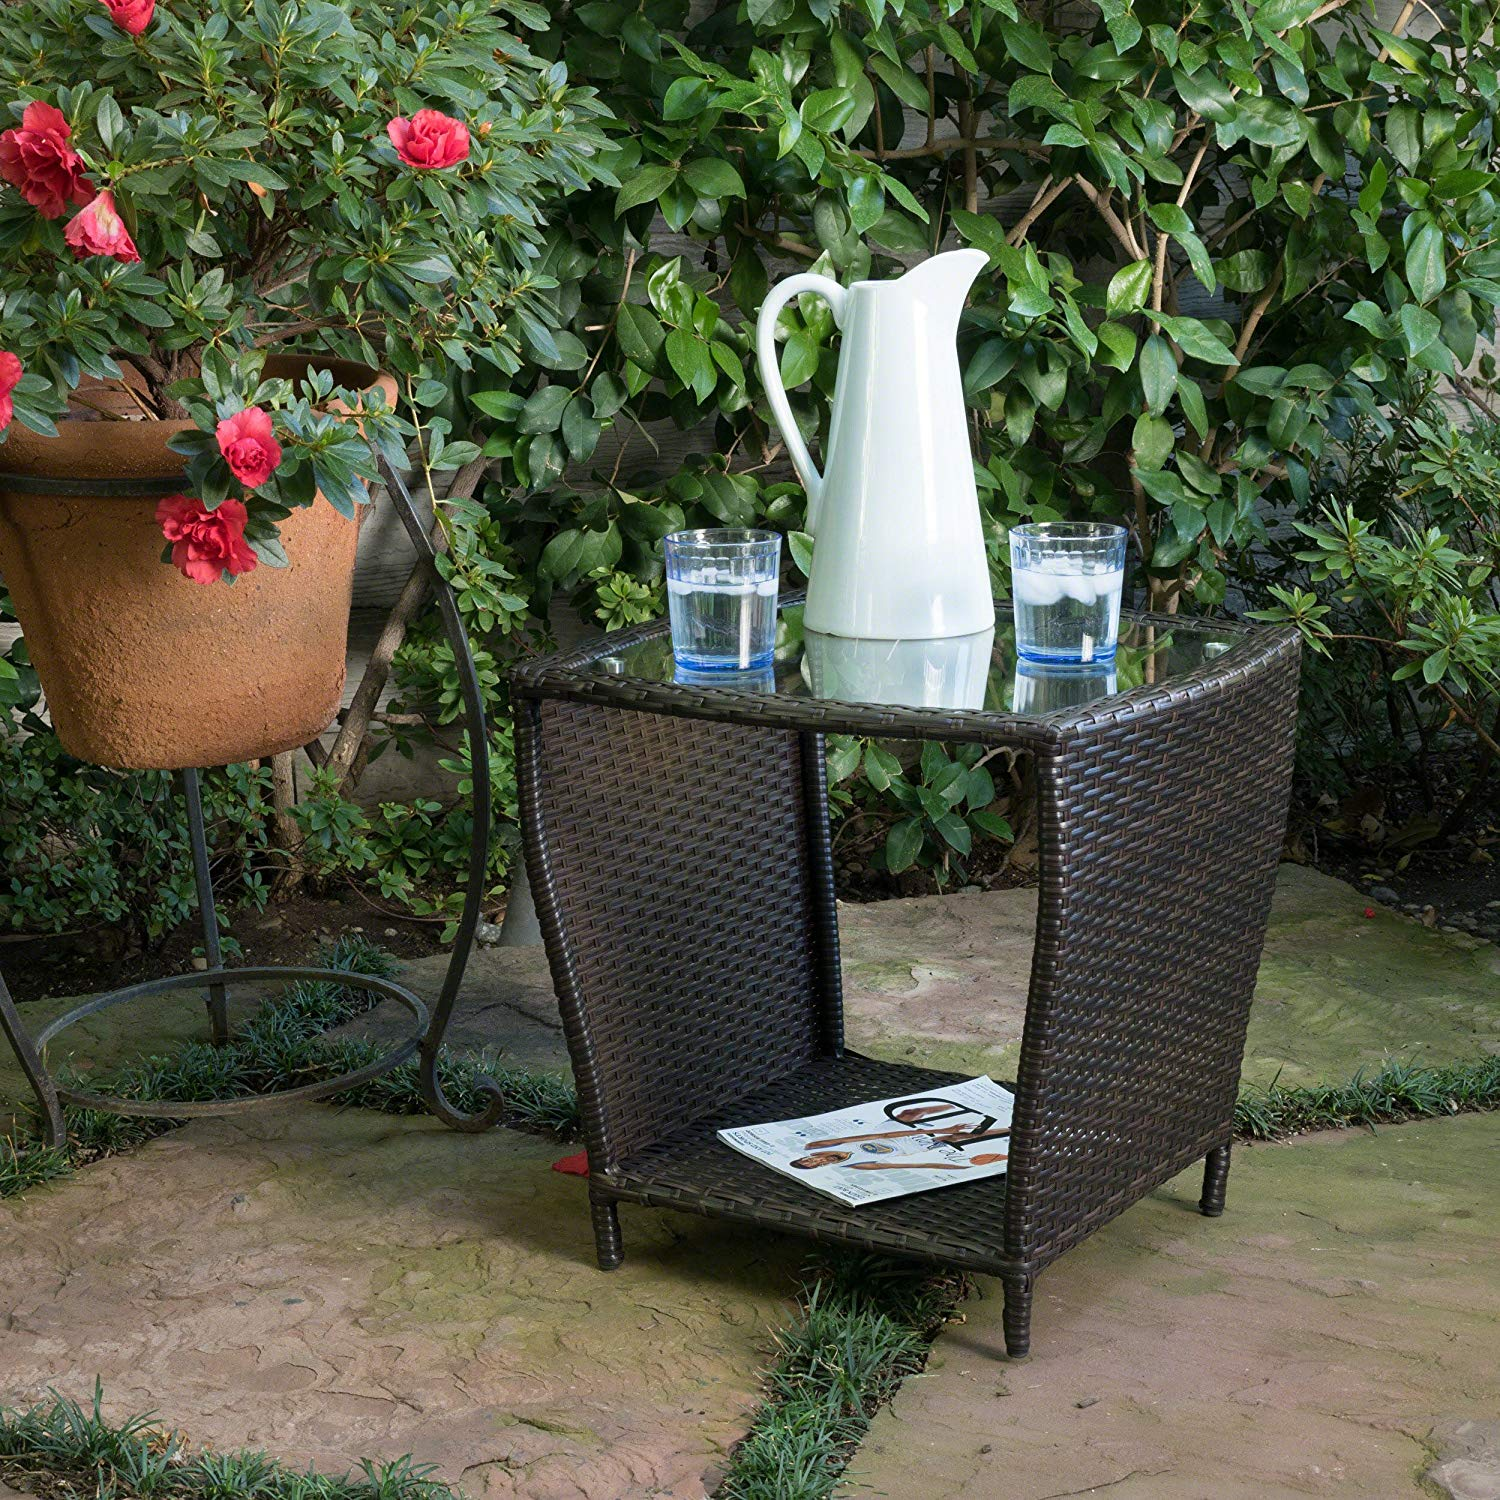 easton outdoor brown wicker accent table garden yszel side nic and bench lucite coffee base round glass top ballard designs chair cushions dale tiffany dragonfly lily lamp modern